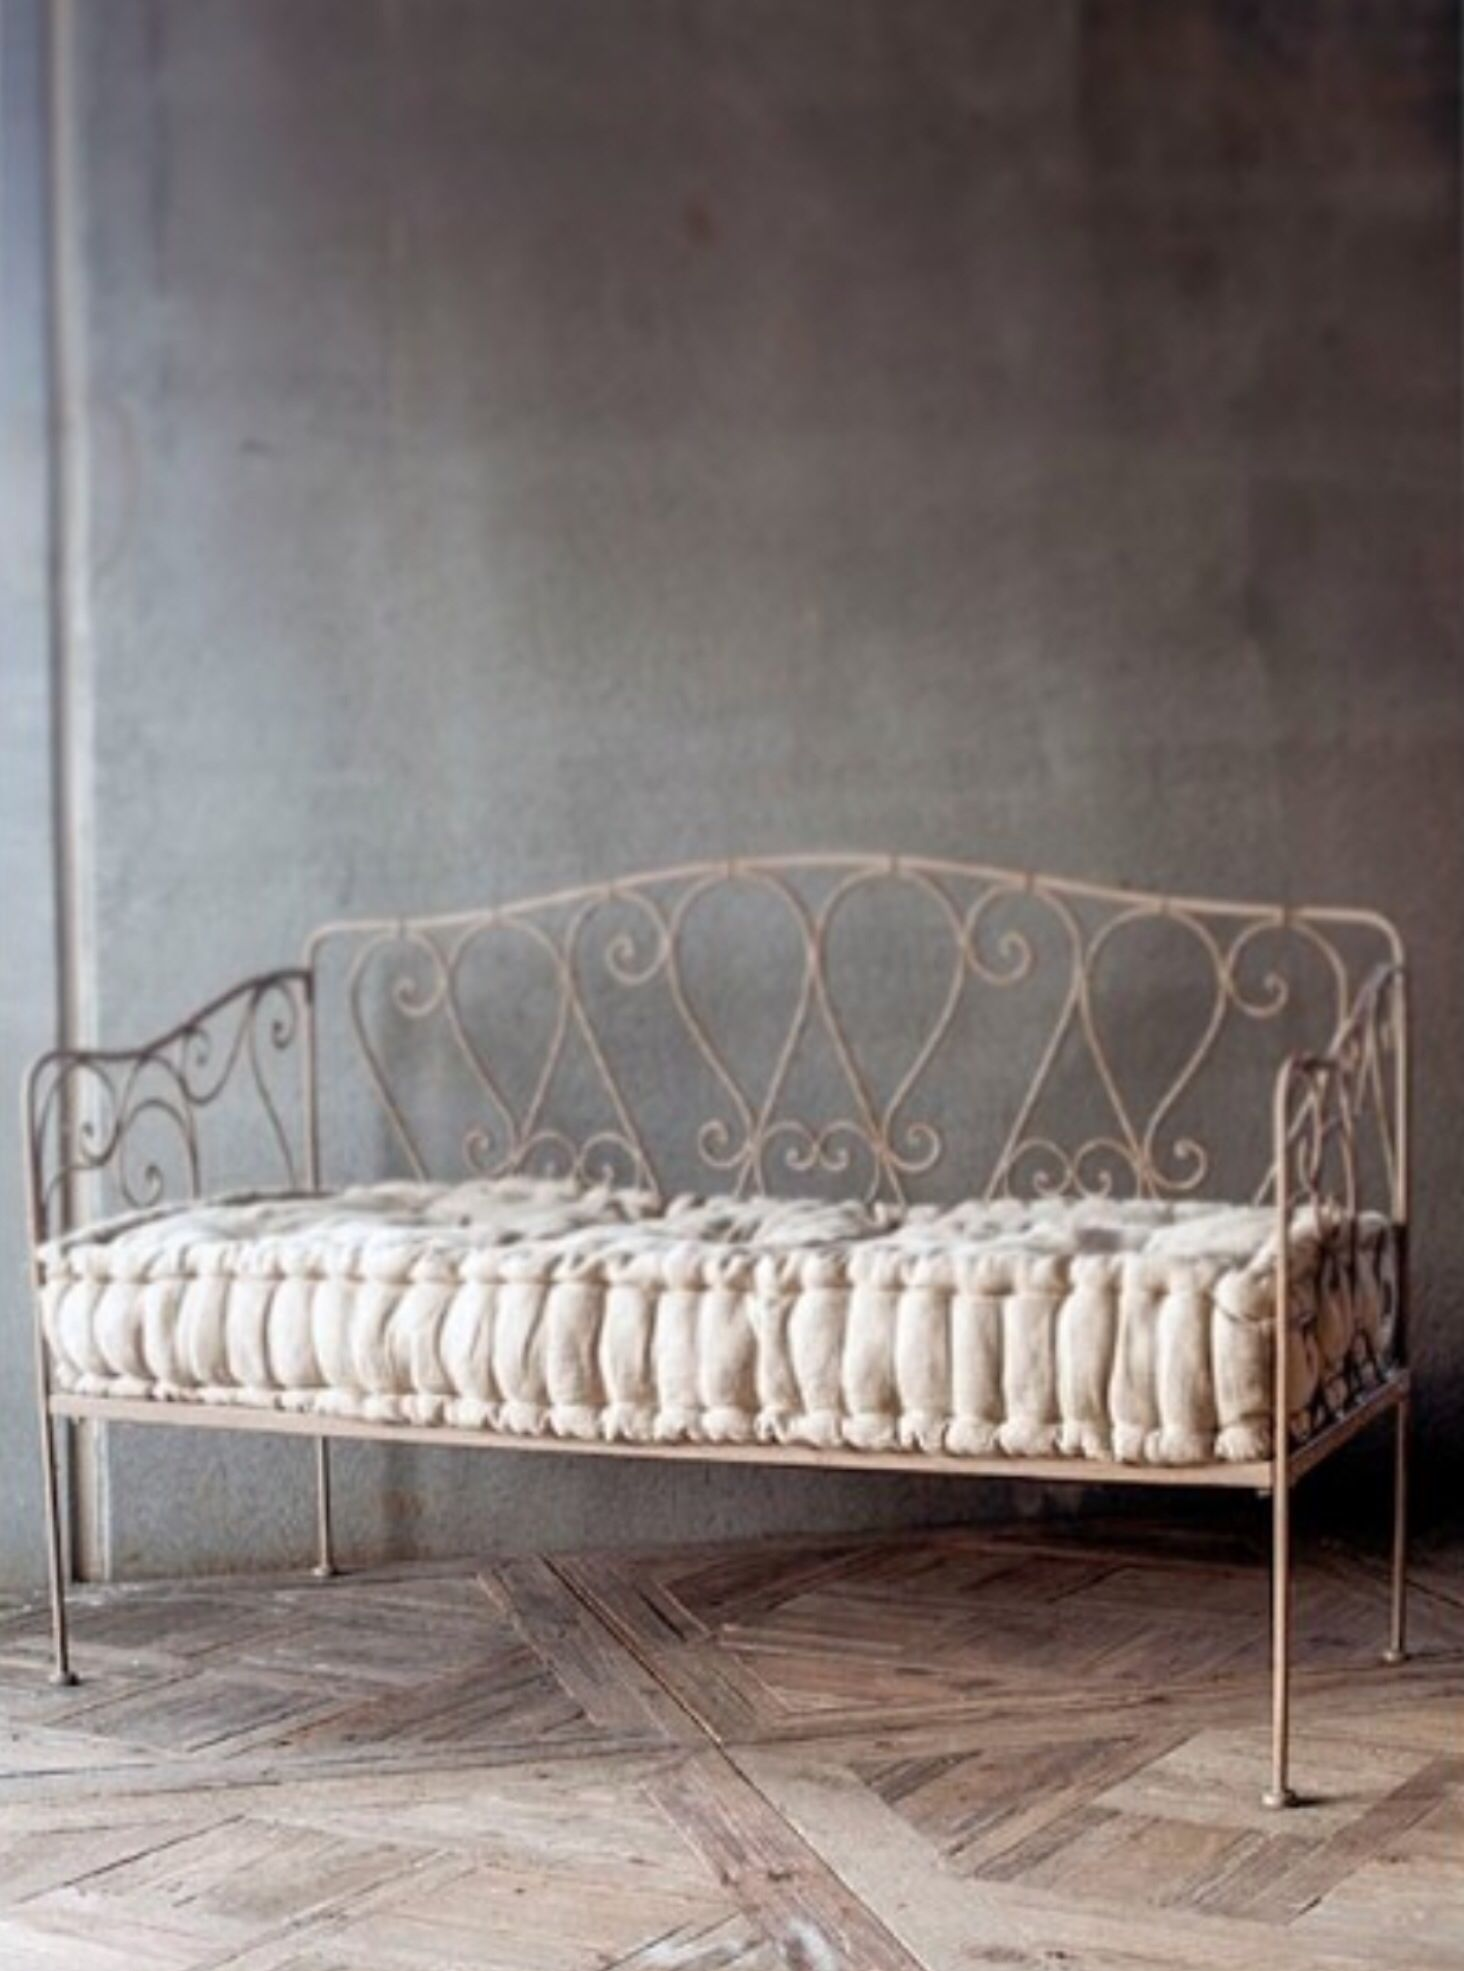 ... Irons, Sweet, Bench, Bench Brocante, Iron Daybed, Brocante Home, Sofas